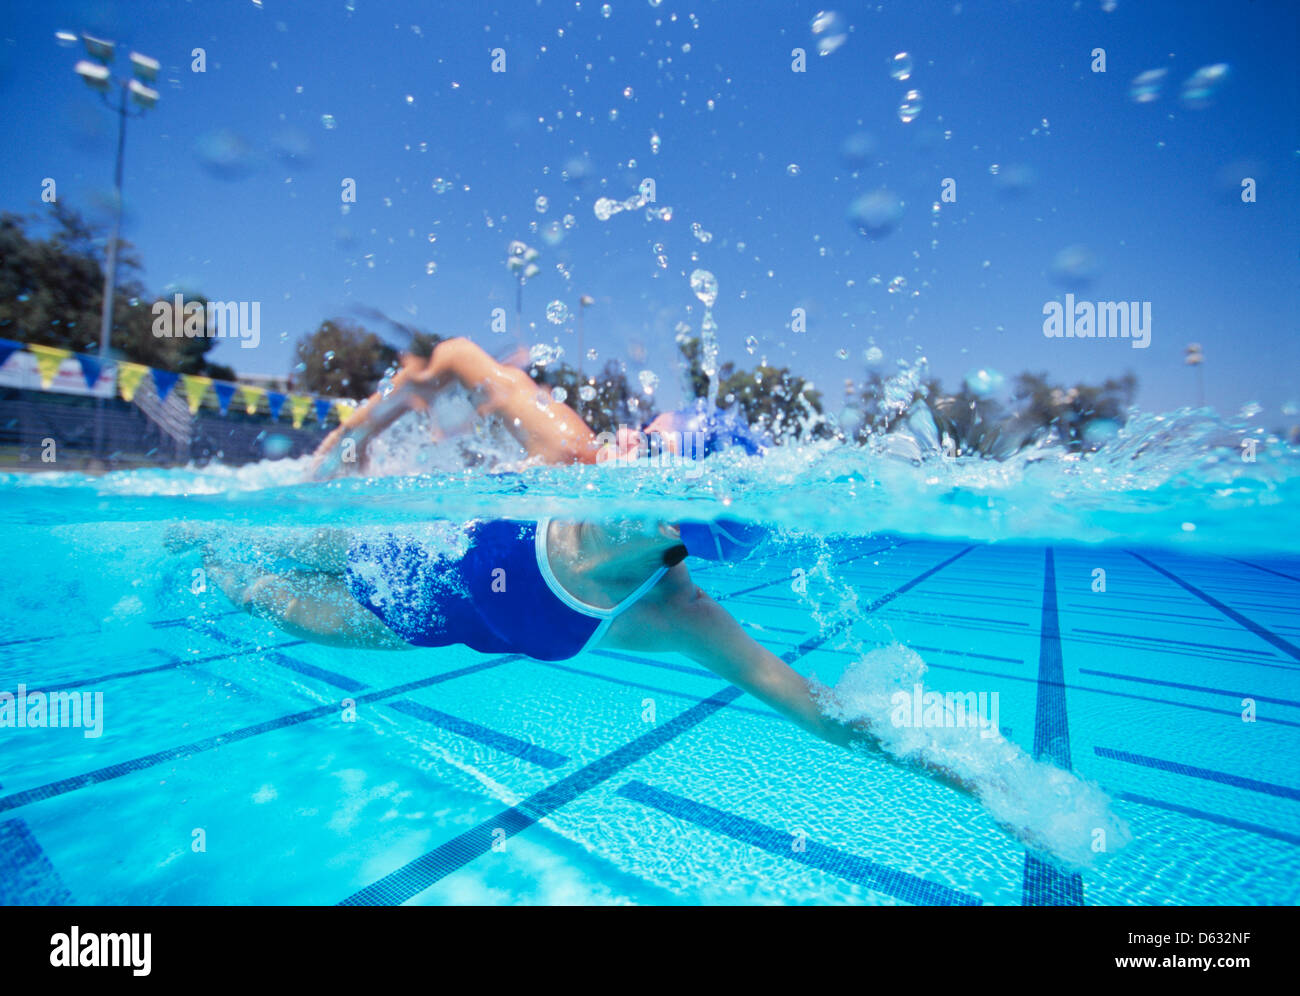 Female swimmer in United States swimsuit swimming in pool - Stock Image